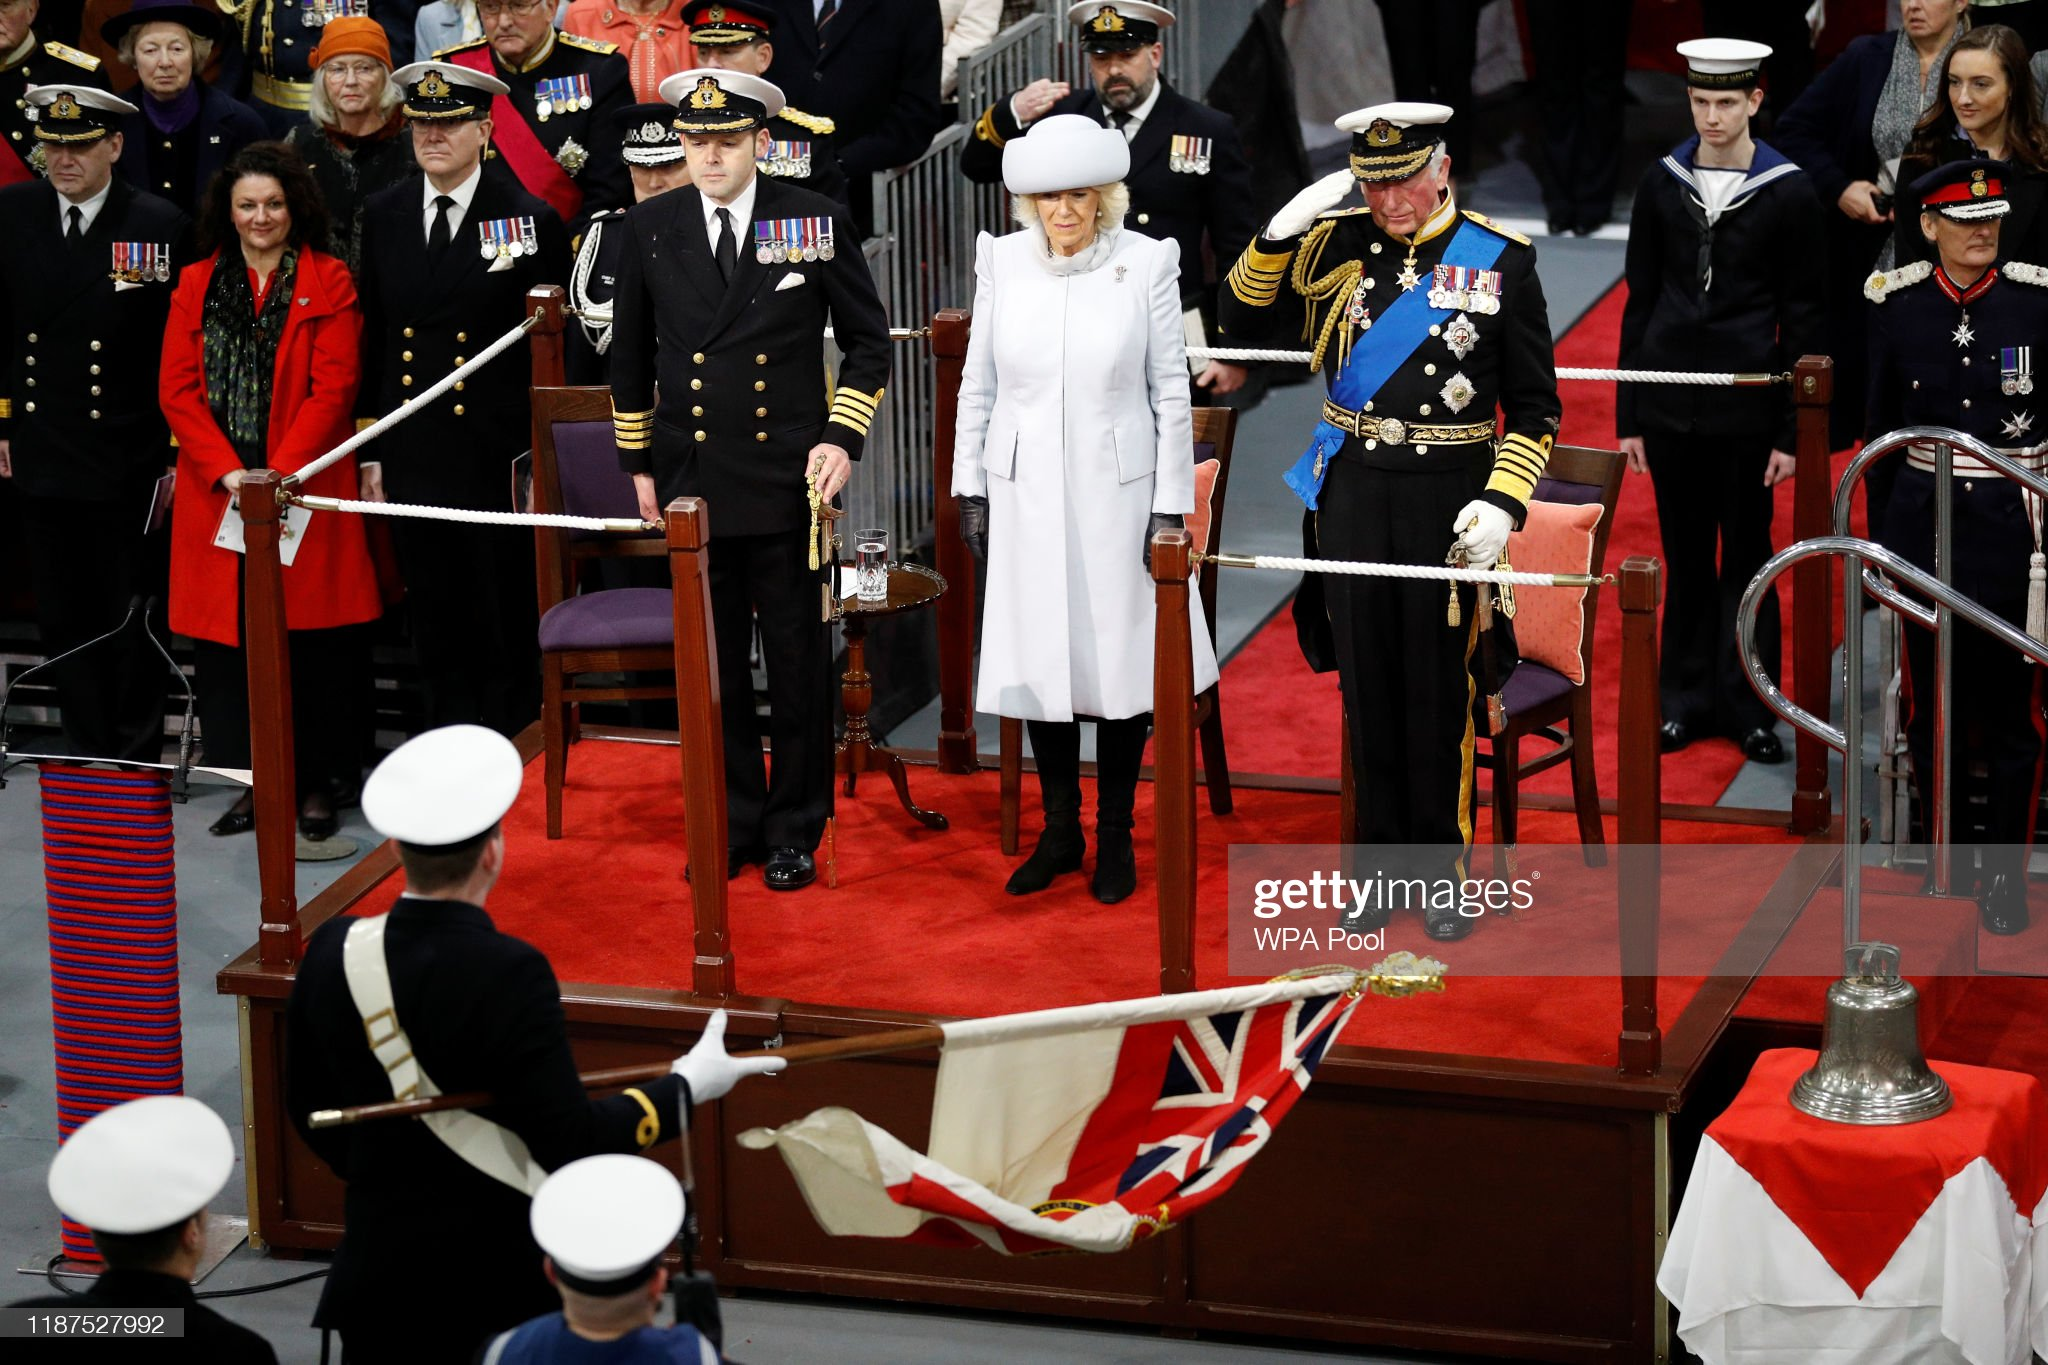 prince-charles-prince-of-wales-and-camilla-duchess-of-cornwall-stand-picture-id1187527992